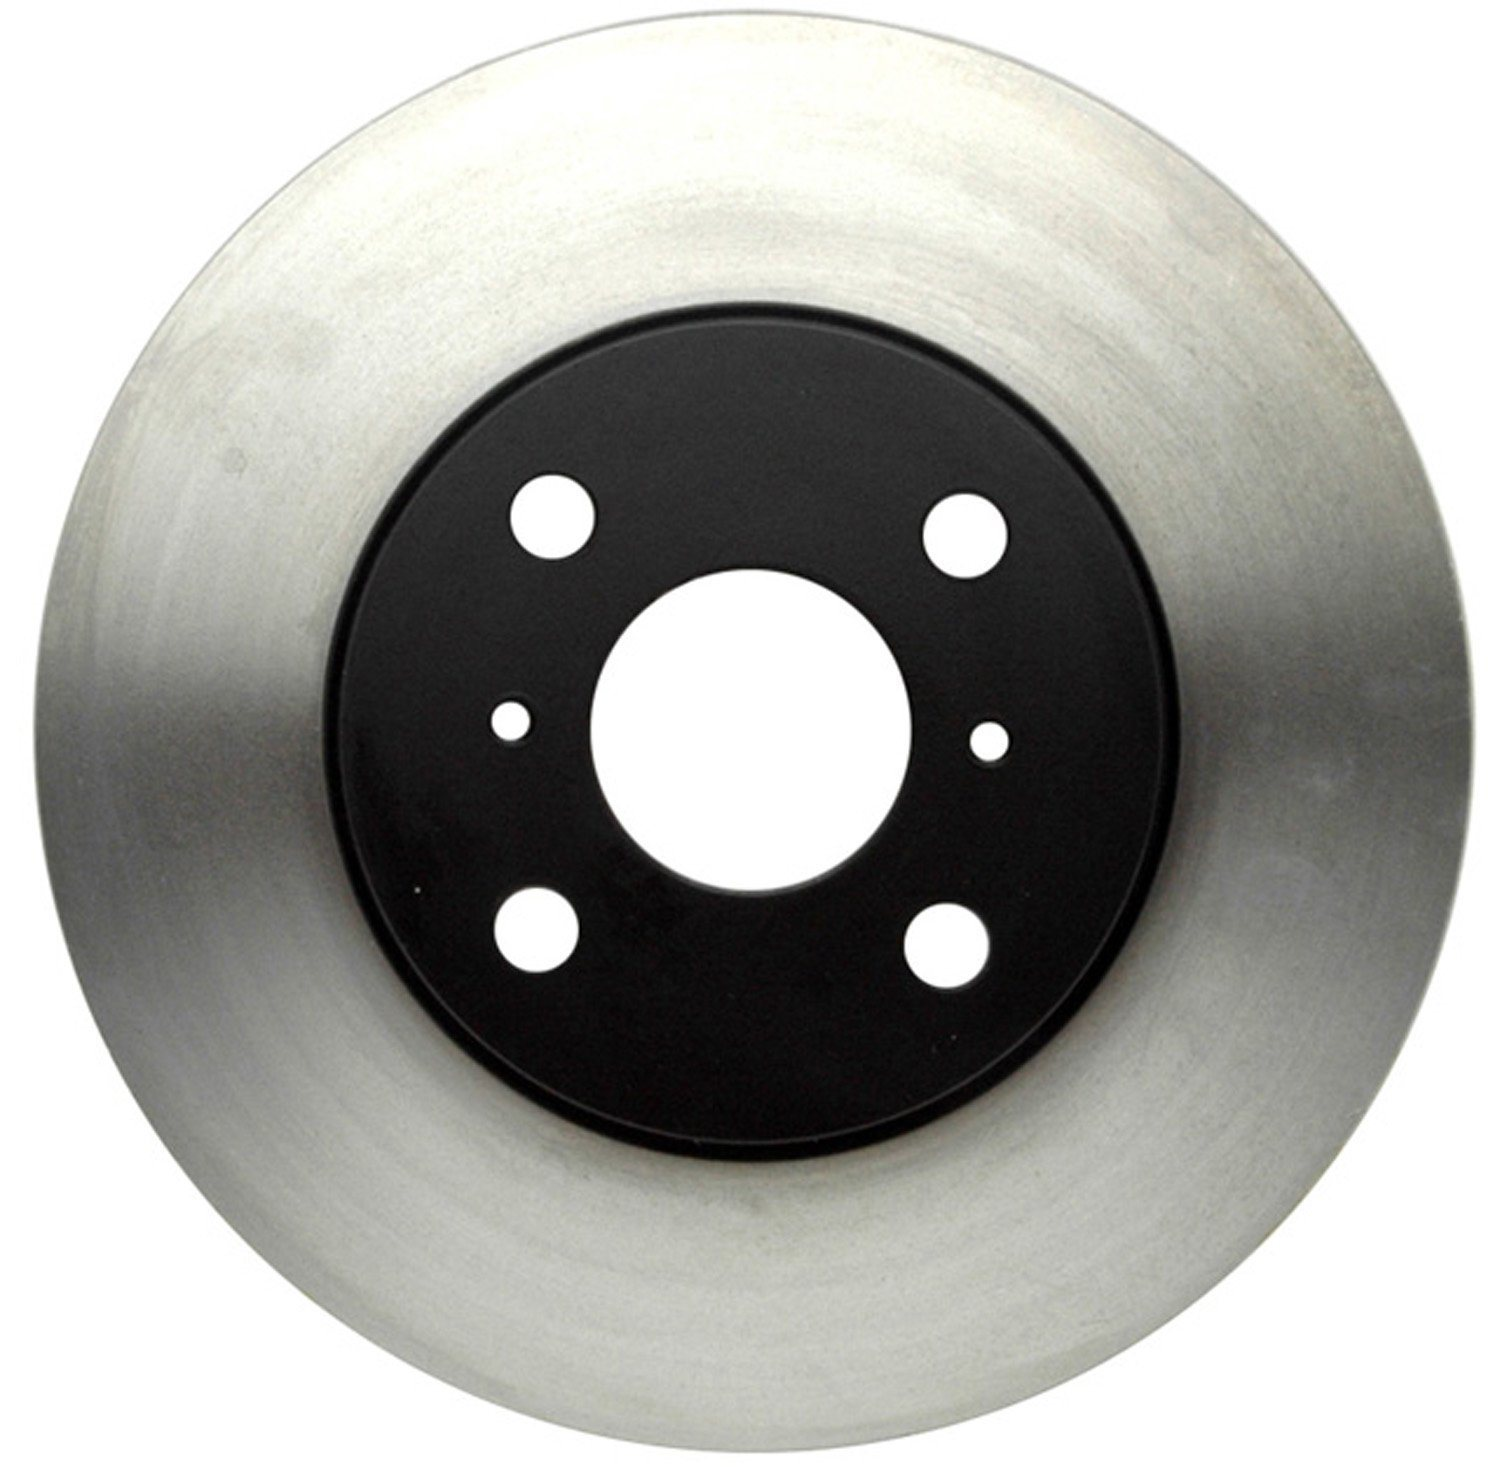 Ts16949 Certificate Approved Brake Disc Rotor for Peugeot Cars